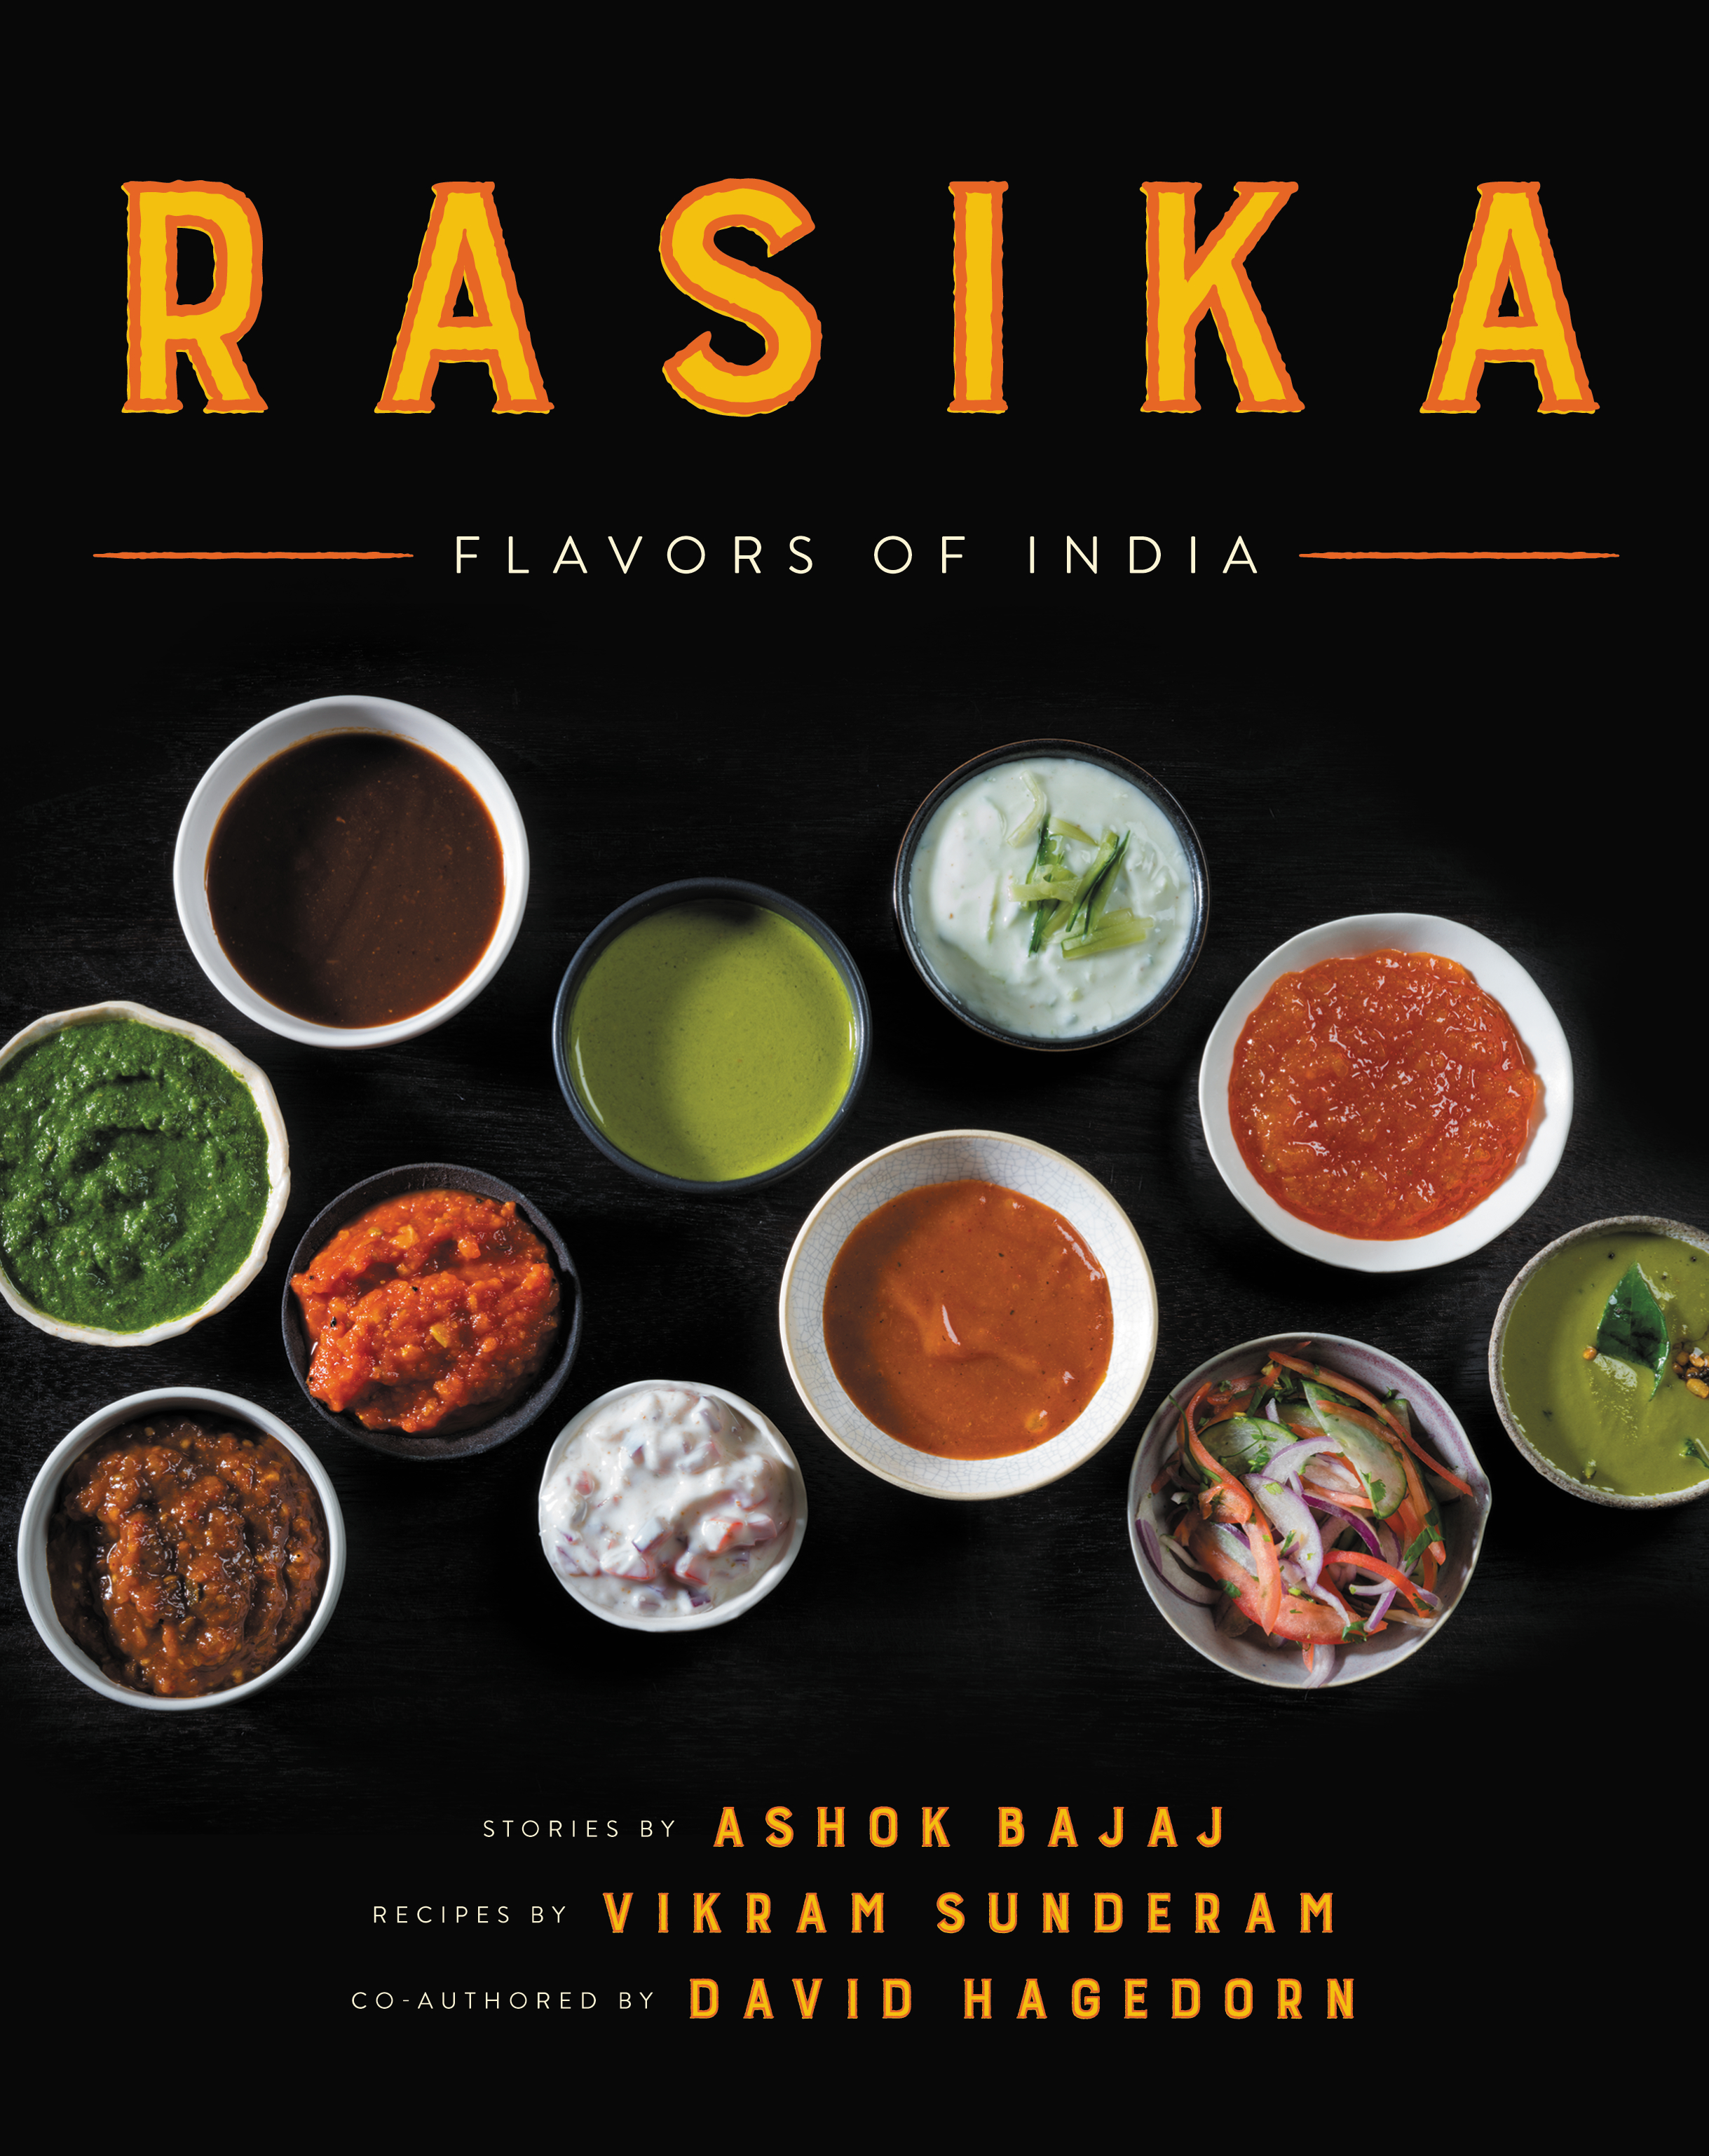 Published Oct. 10 by Ecco, 336 pages. There are two book signings this weekend. Ashok Bajaj of Knightsbridge Restaurant Group has invited people to join in the celebration of this highly anticipated cookbook.  The first signing is Saturday, October 14, 2017 from 1 PM to 3 PM at RASIKA WEST END. The second book signing is Sunday, October 15, 2017 from 4 PM to 6 PM at RASIKA. RSVP to: rsvprasika@heatherfreeman.com  by October 12th.